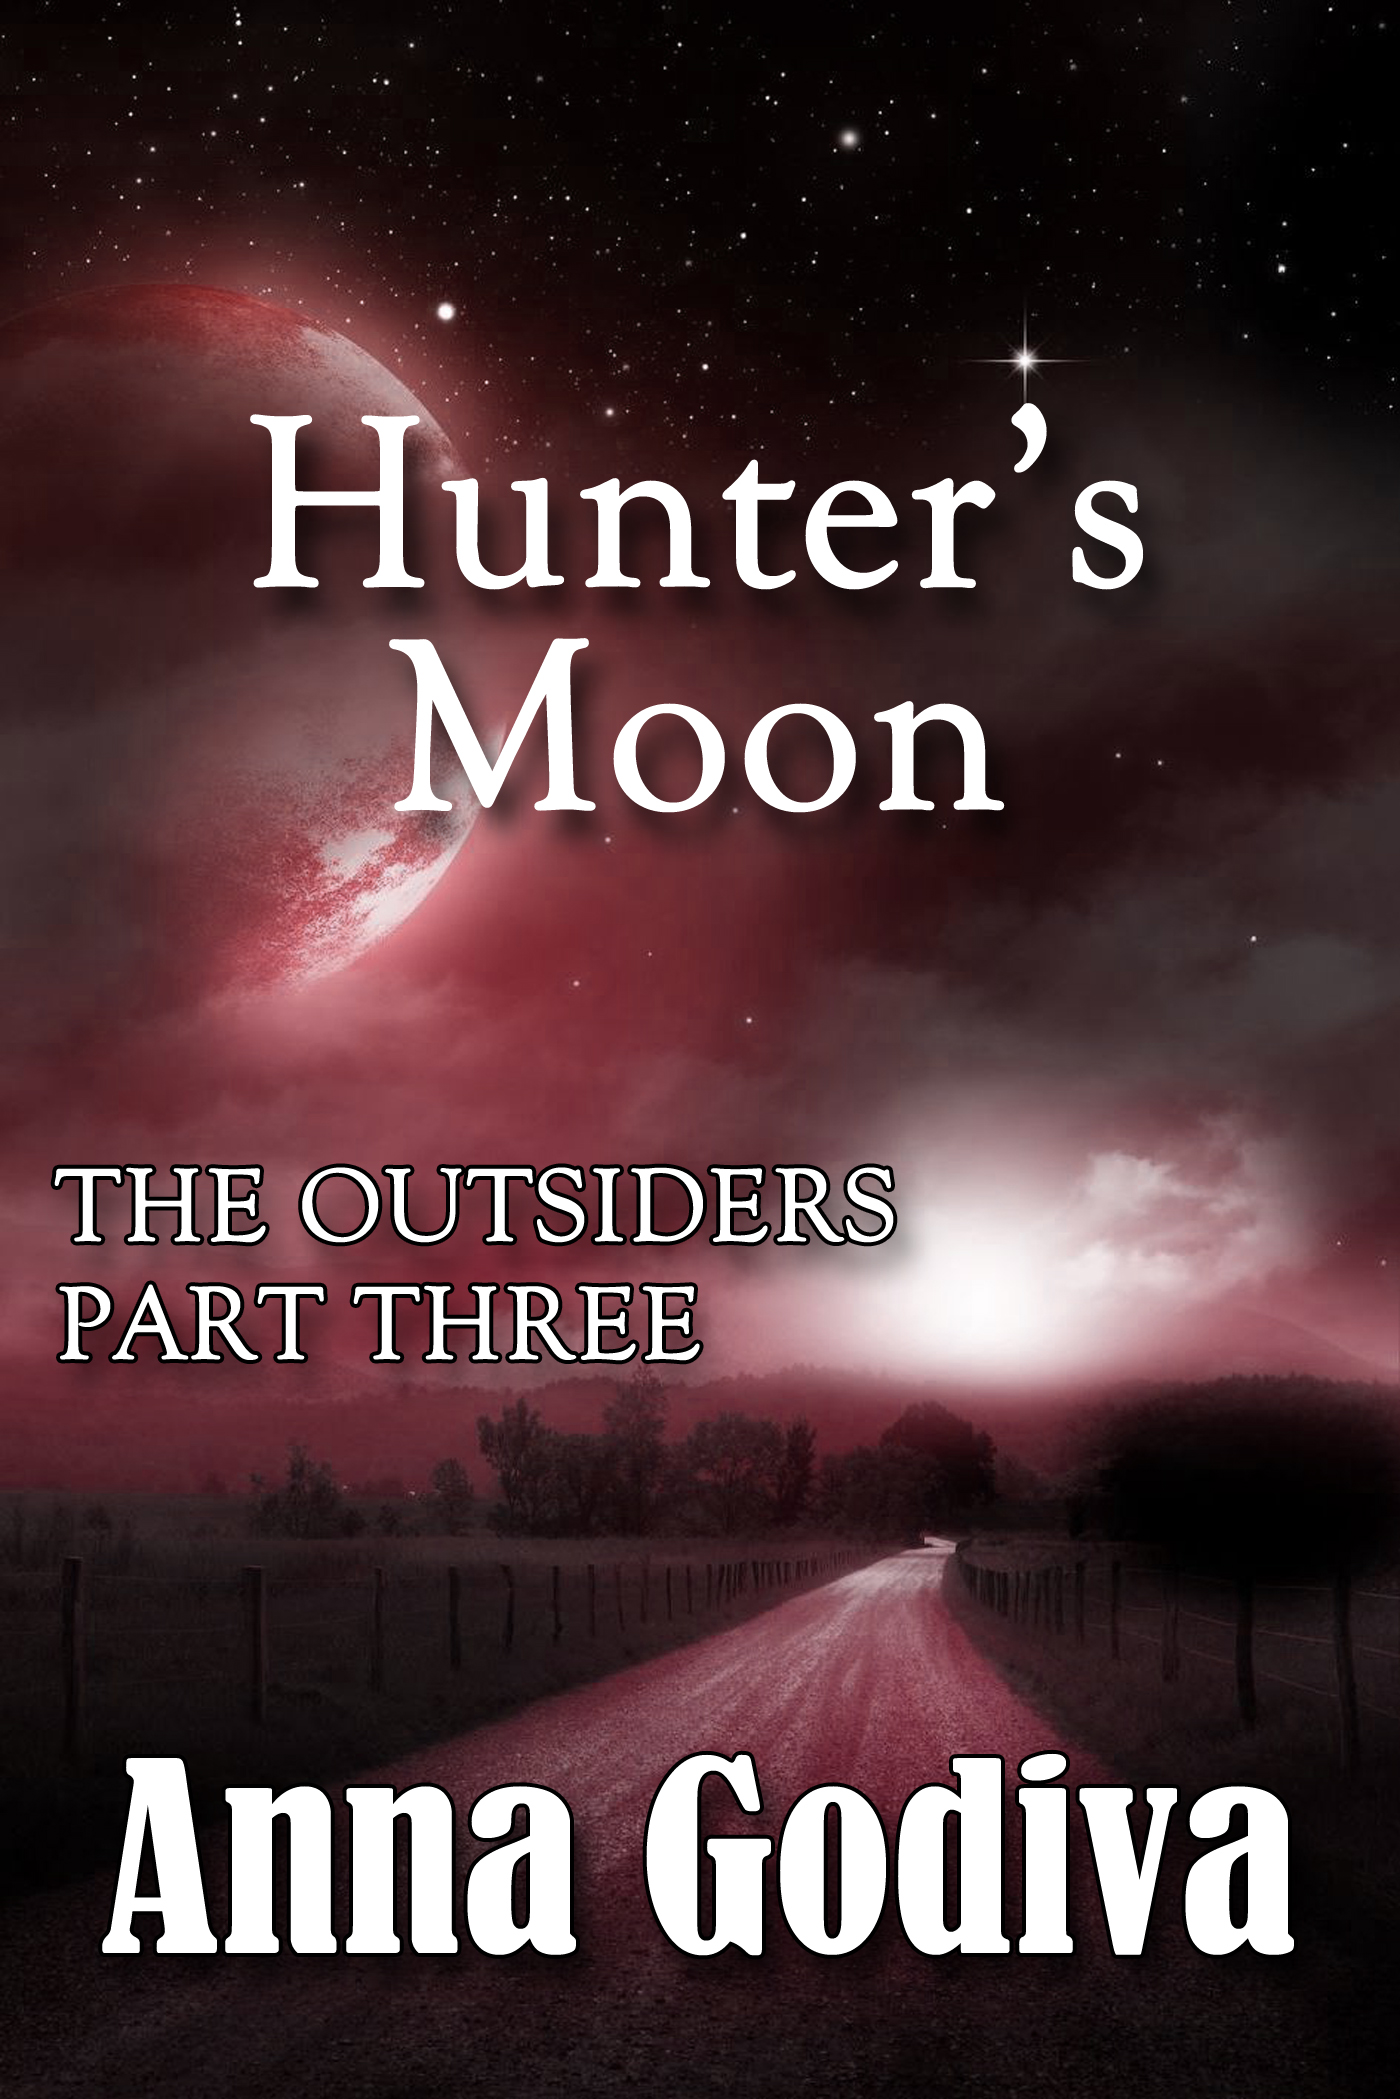 Anna Godiva - Hunter's Moon: The Outsiders, Part Three